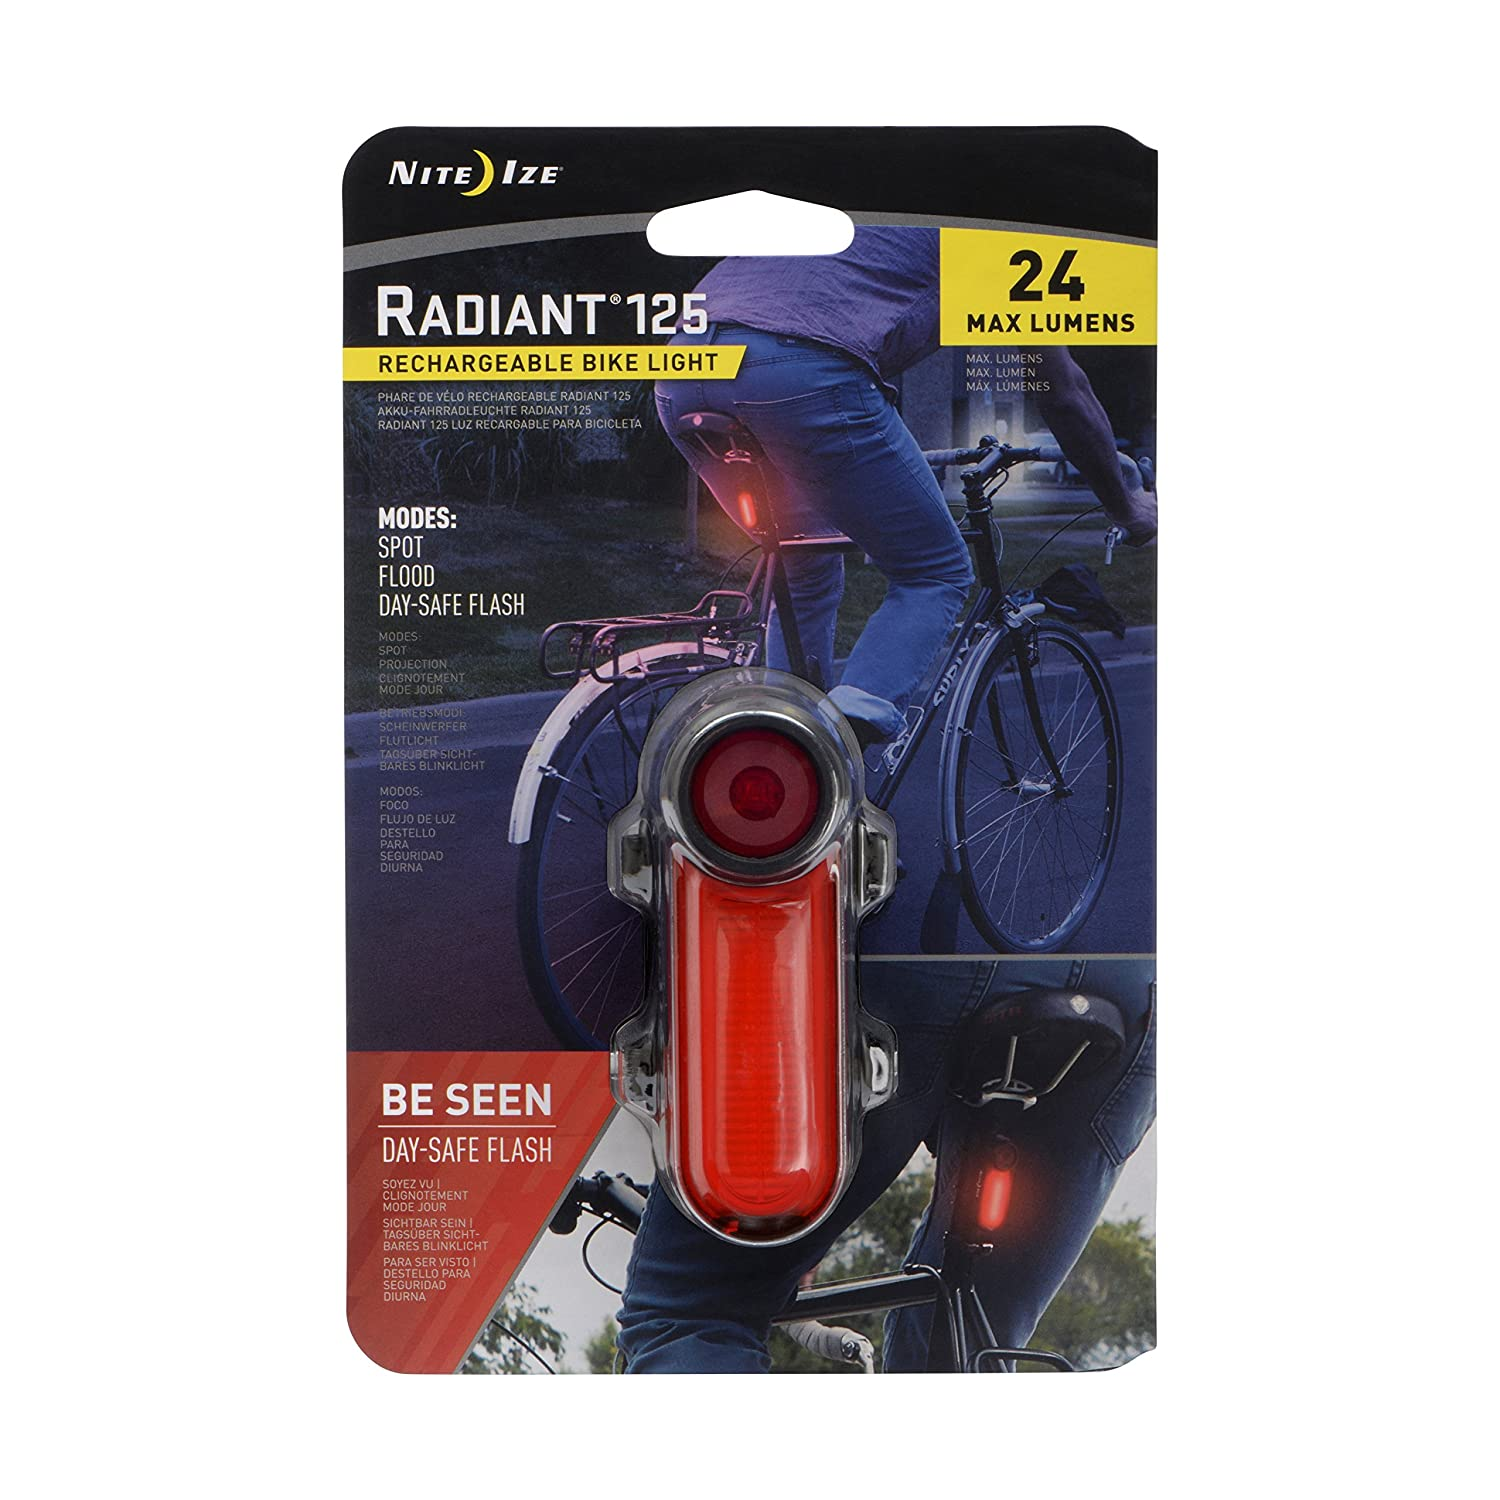 Amazon.com : NITE IZE Red Radiant 125 Rechargeable Bike Light : Sports & Outdoors